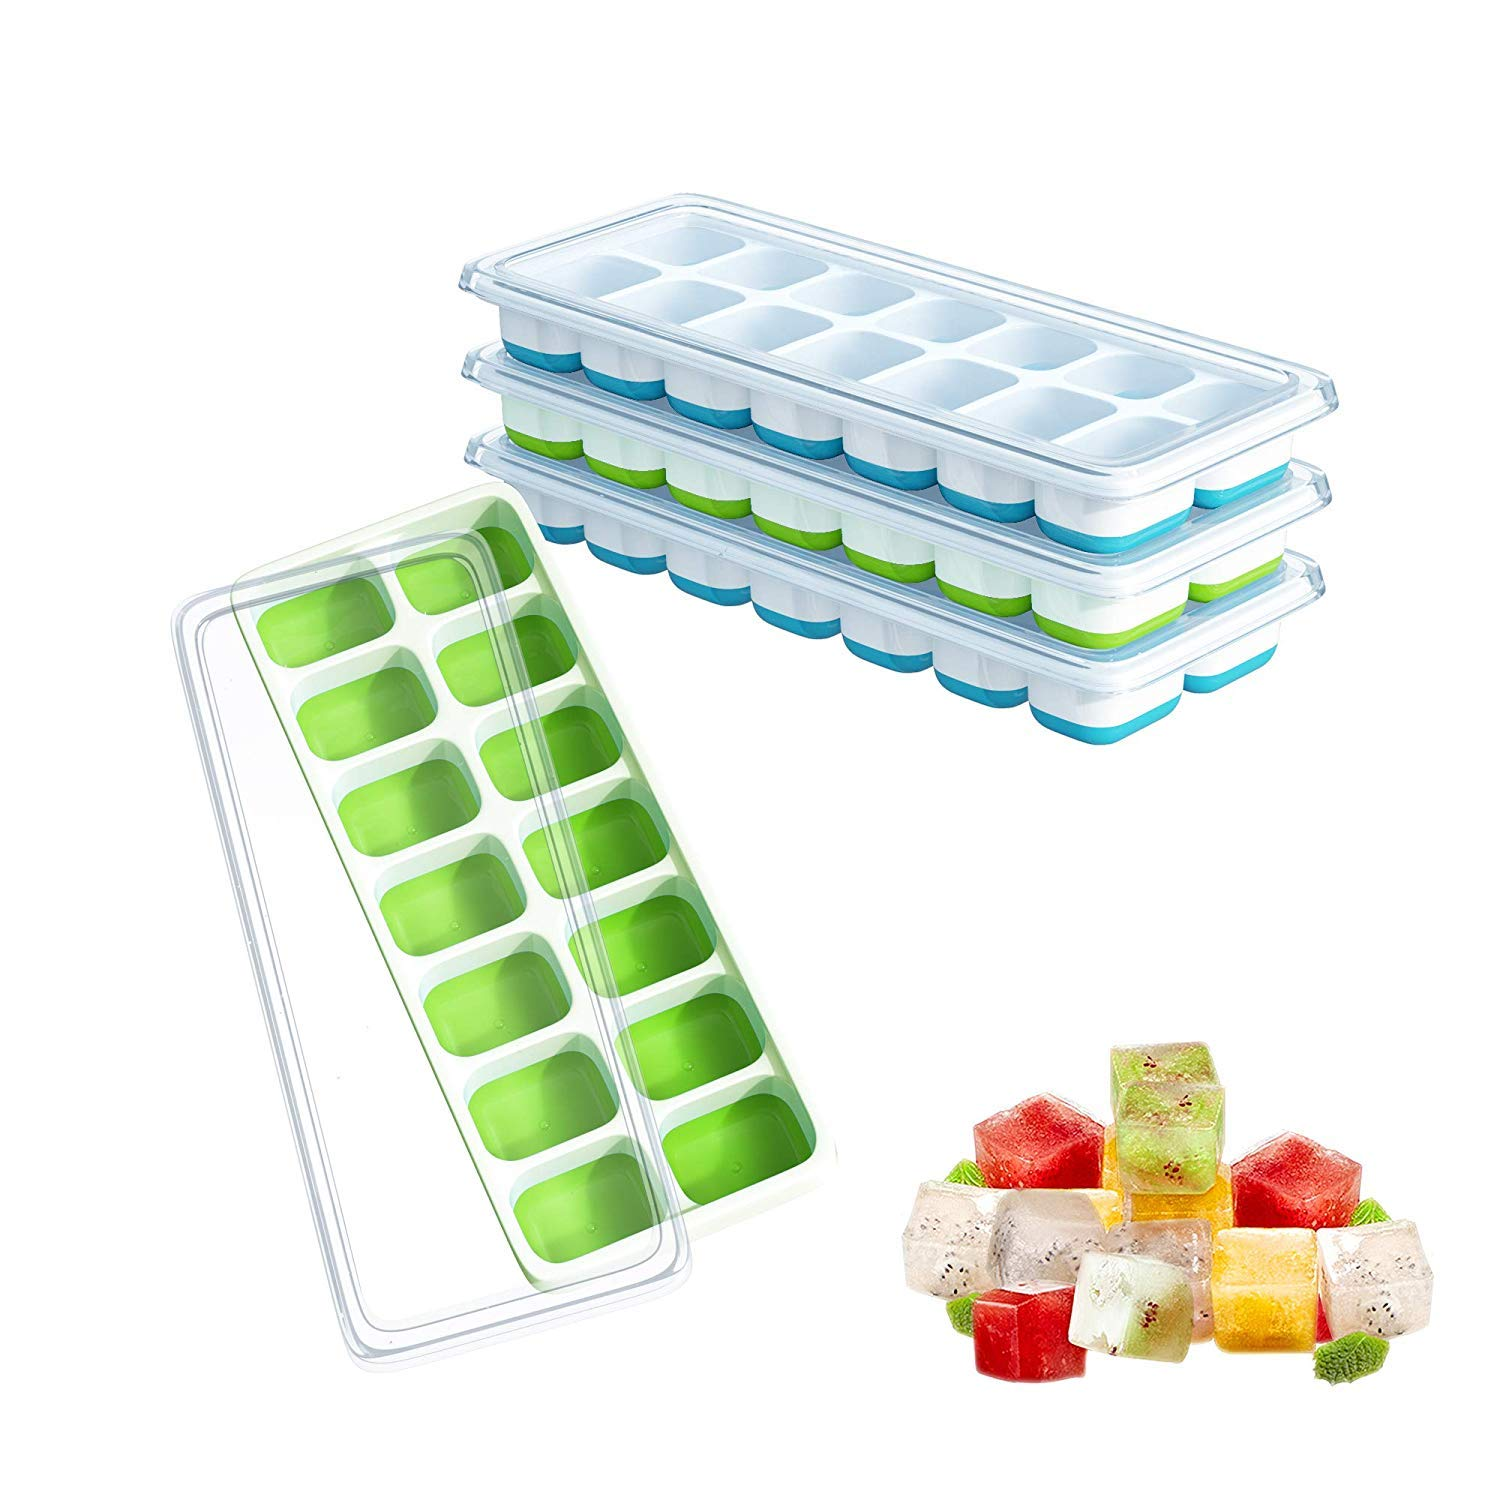 4 Sterilite STACKABLE Ice Cube Tray SET OF 4 Trays BLUE MADE IN USA 4 Pack